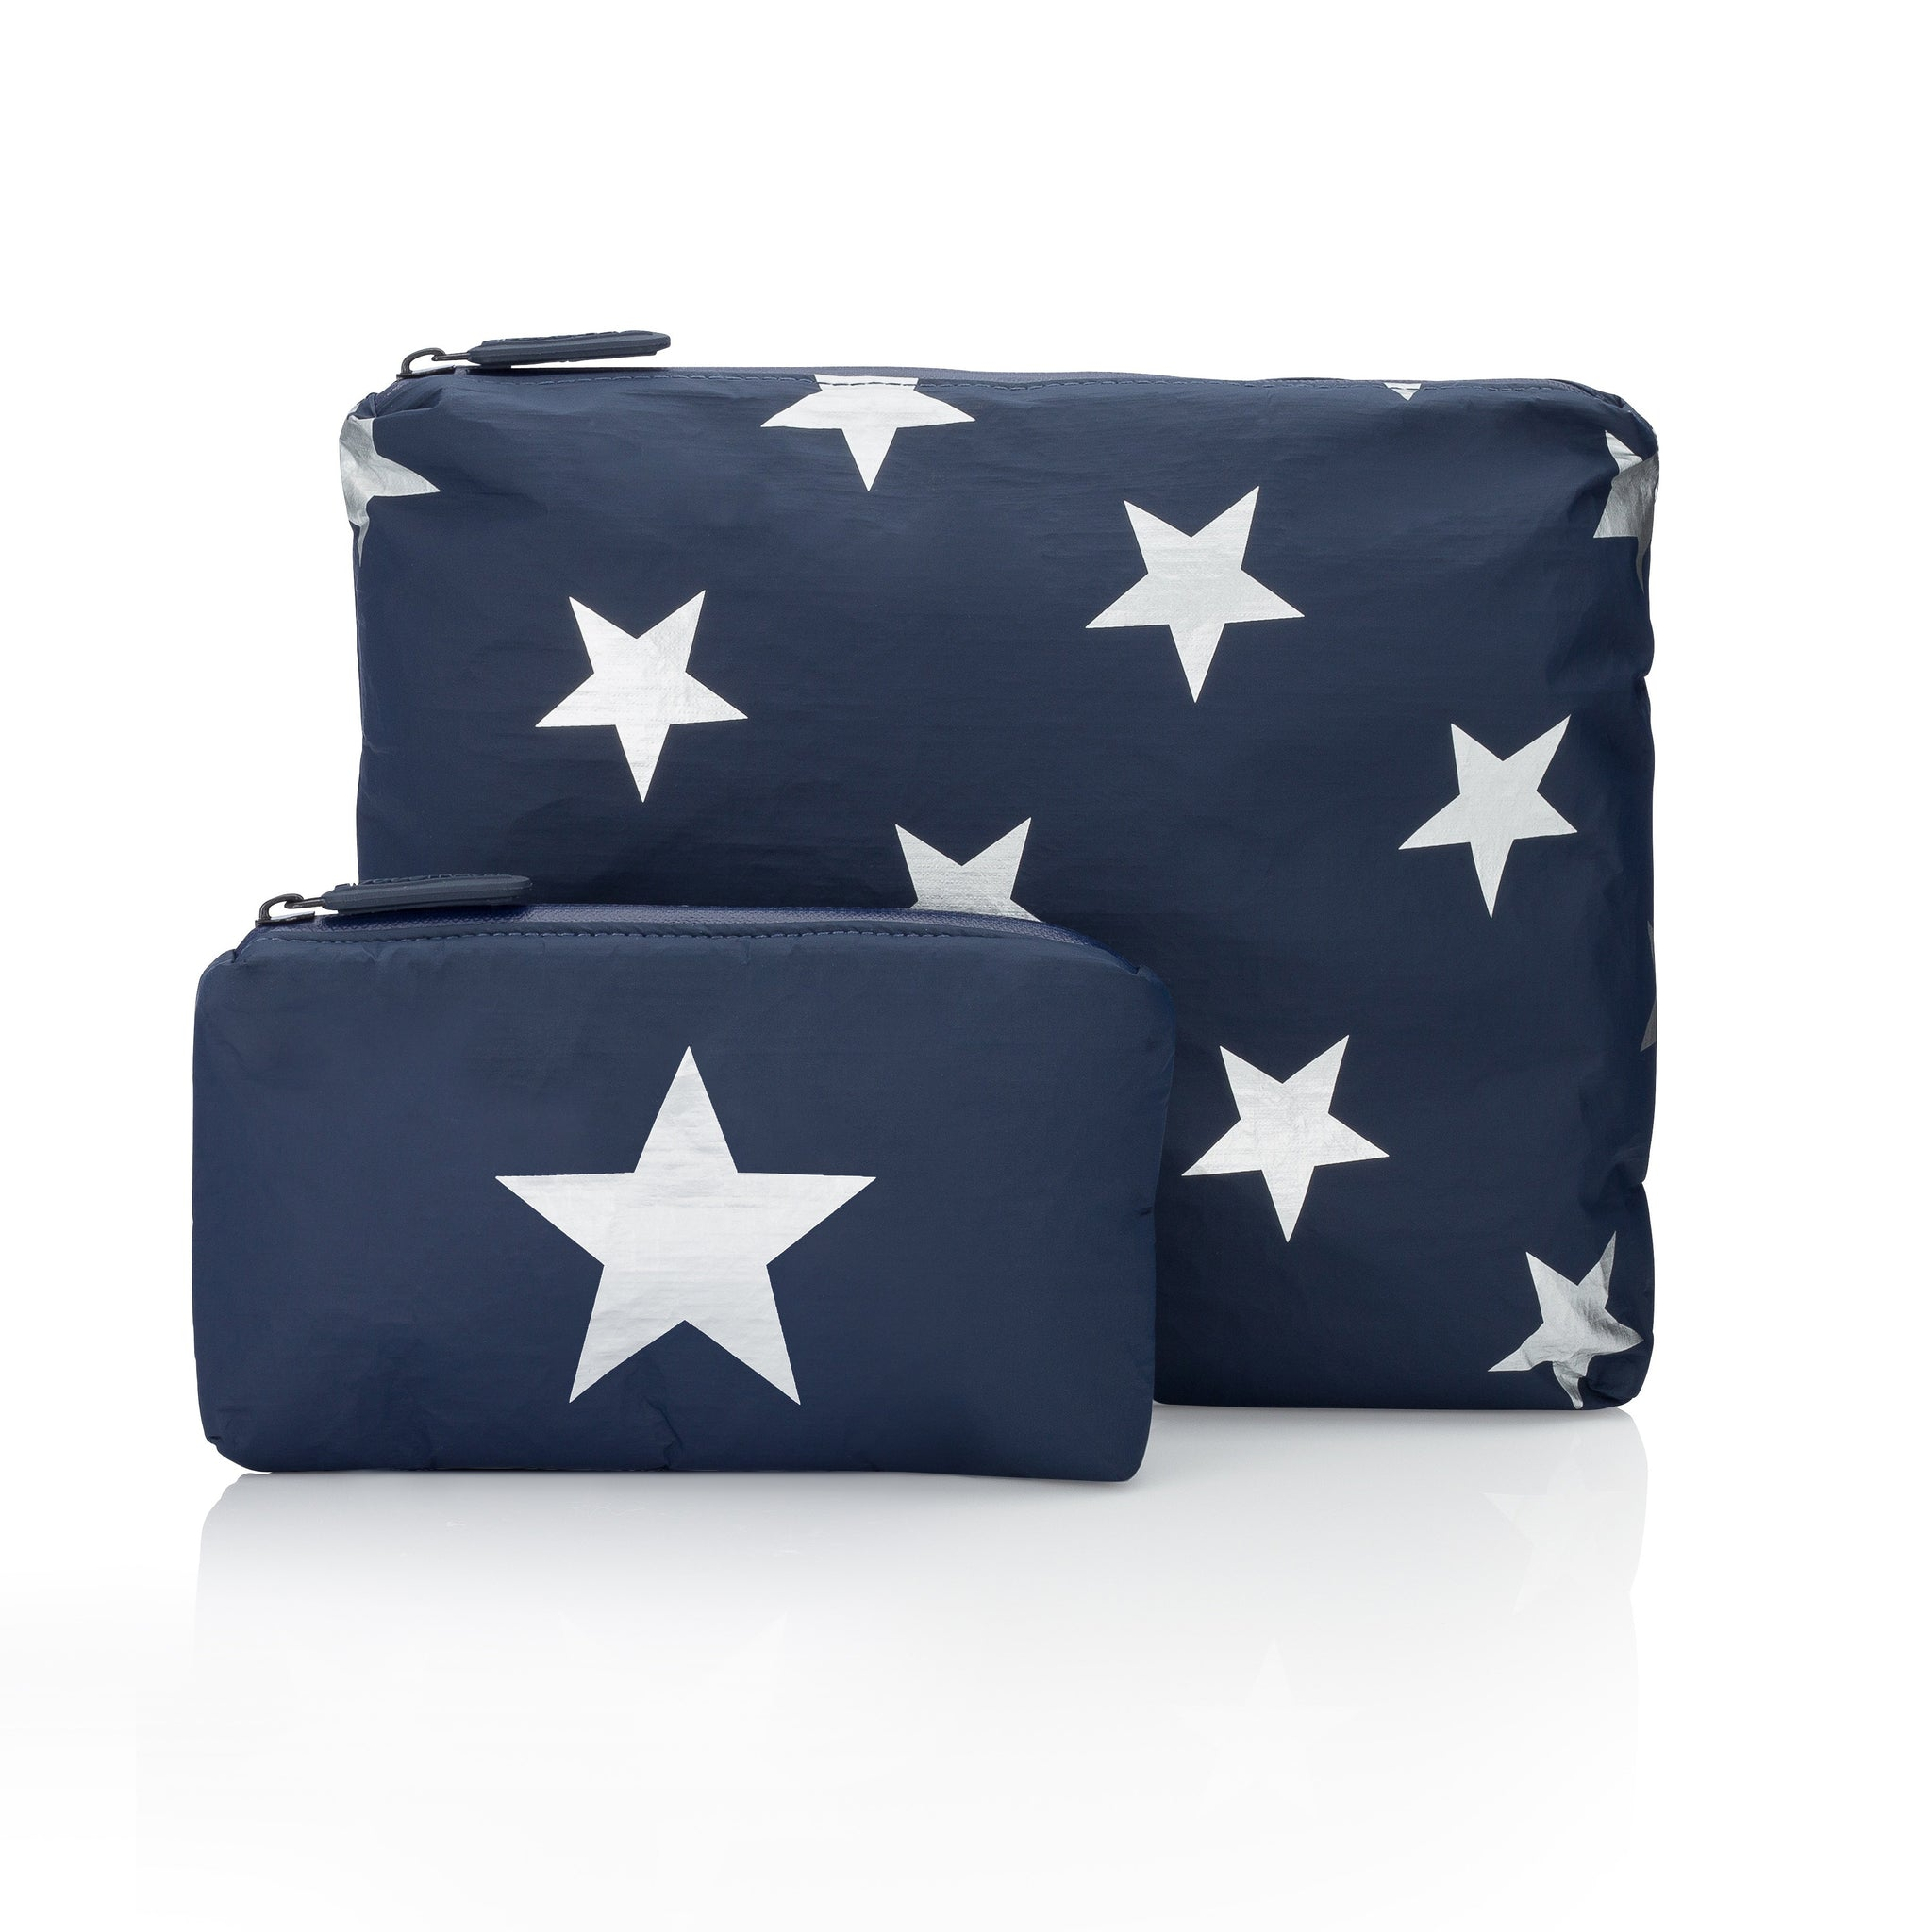 Set of Two Packs - Travel Pouches - Cosmetic Cases - Navy HLT Collection with a Metallic Silver Stars